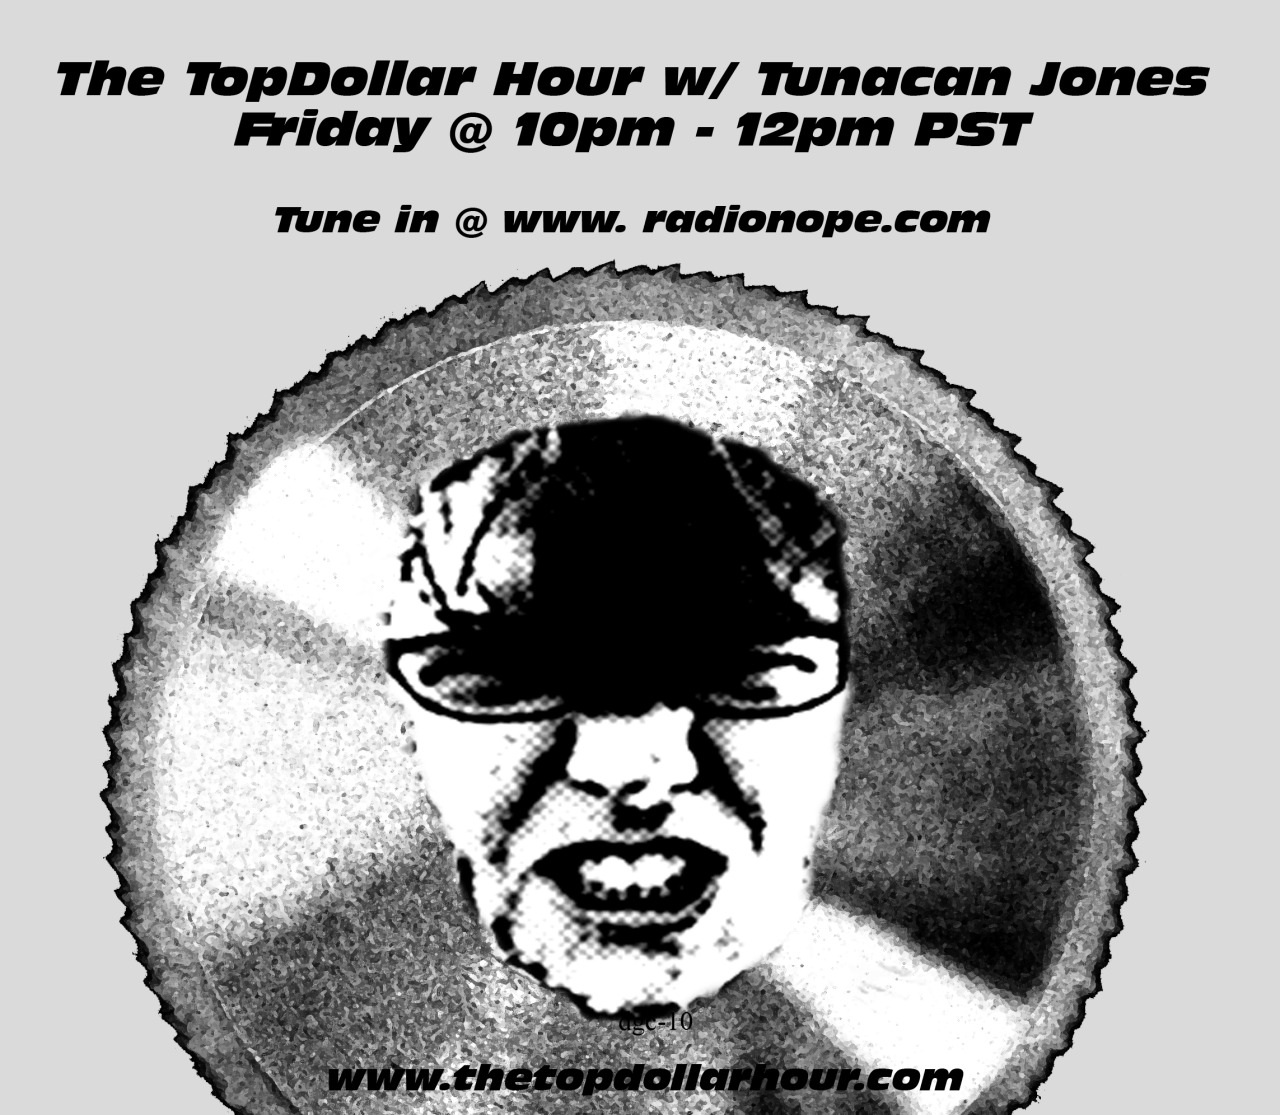 MUSIC FOR THE BIPOLAR GENERATION !!   yes, that's right it happens TONIGHT!!!! The debut episode of The TopDollar Hour is tonight at 10pm - 12pm PST. Just go to  www.radionope.com  click play and chat with me live during the show. Everything I will say during the chat will all be lies. TUNE IN!!!!!!!!!!!